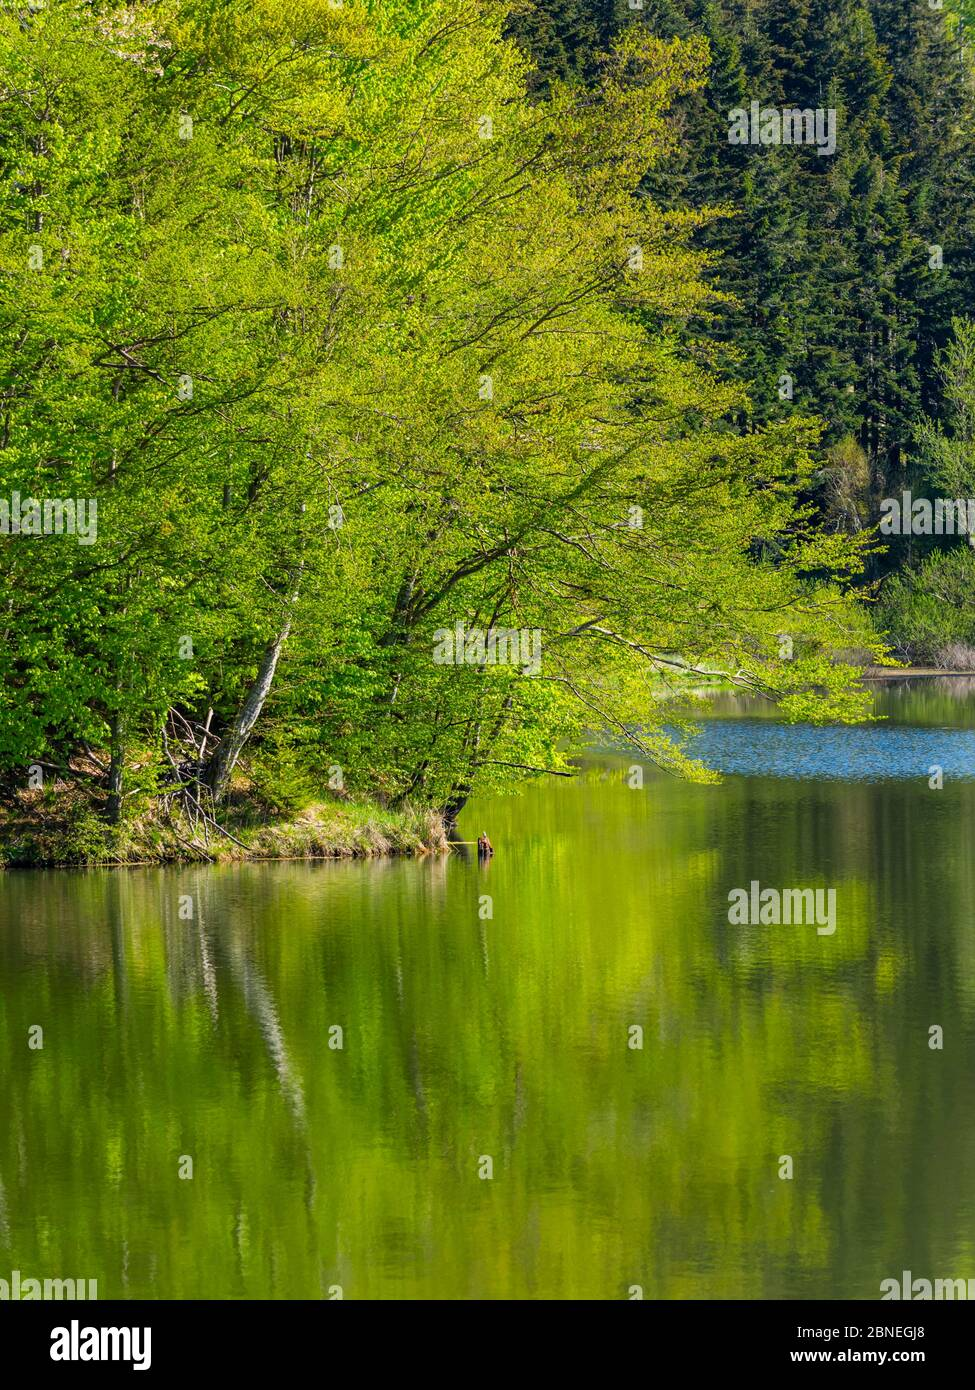 Green forest nature natural beauty isolated isolation focus on branch branches Stock Photo